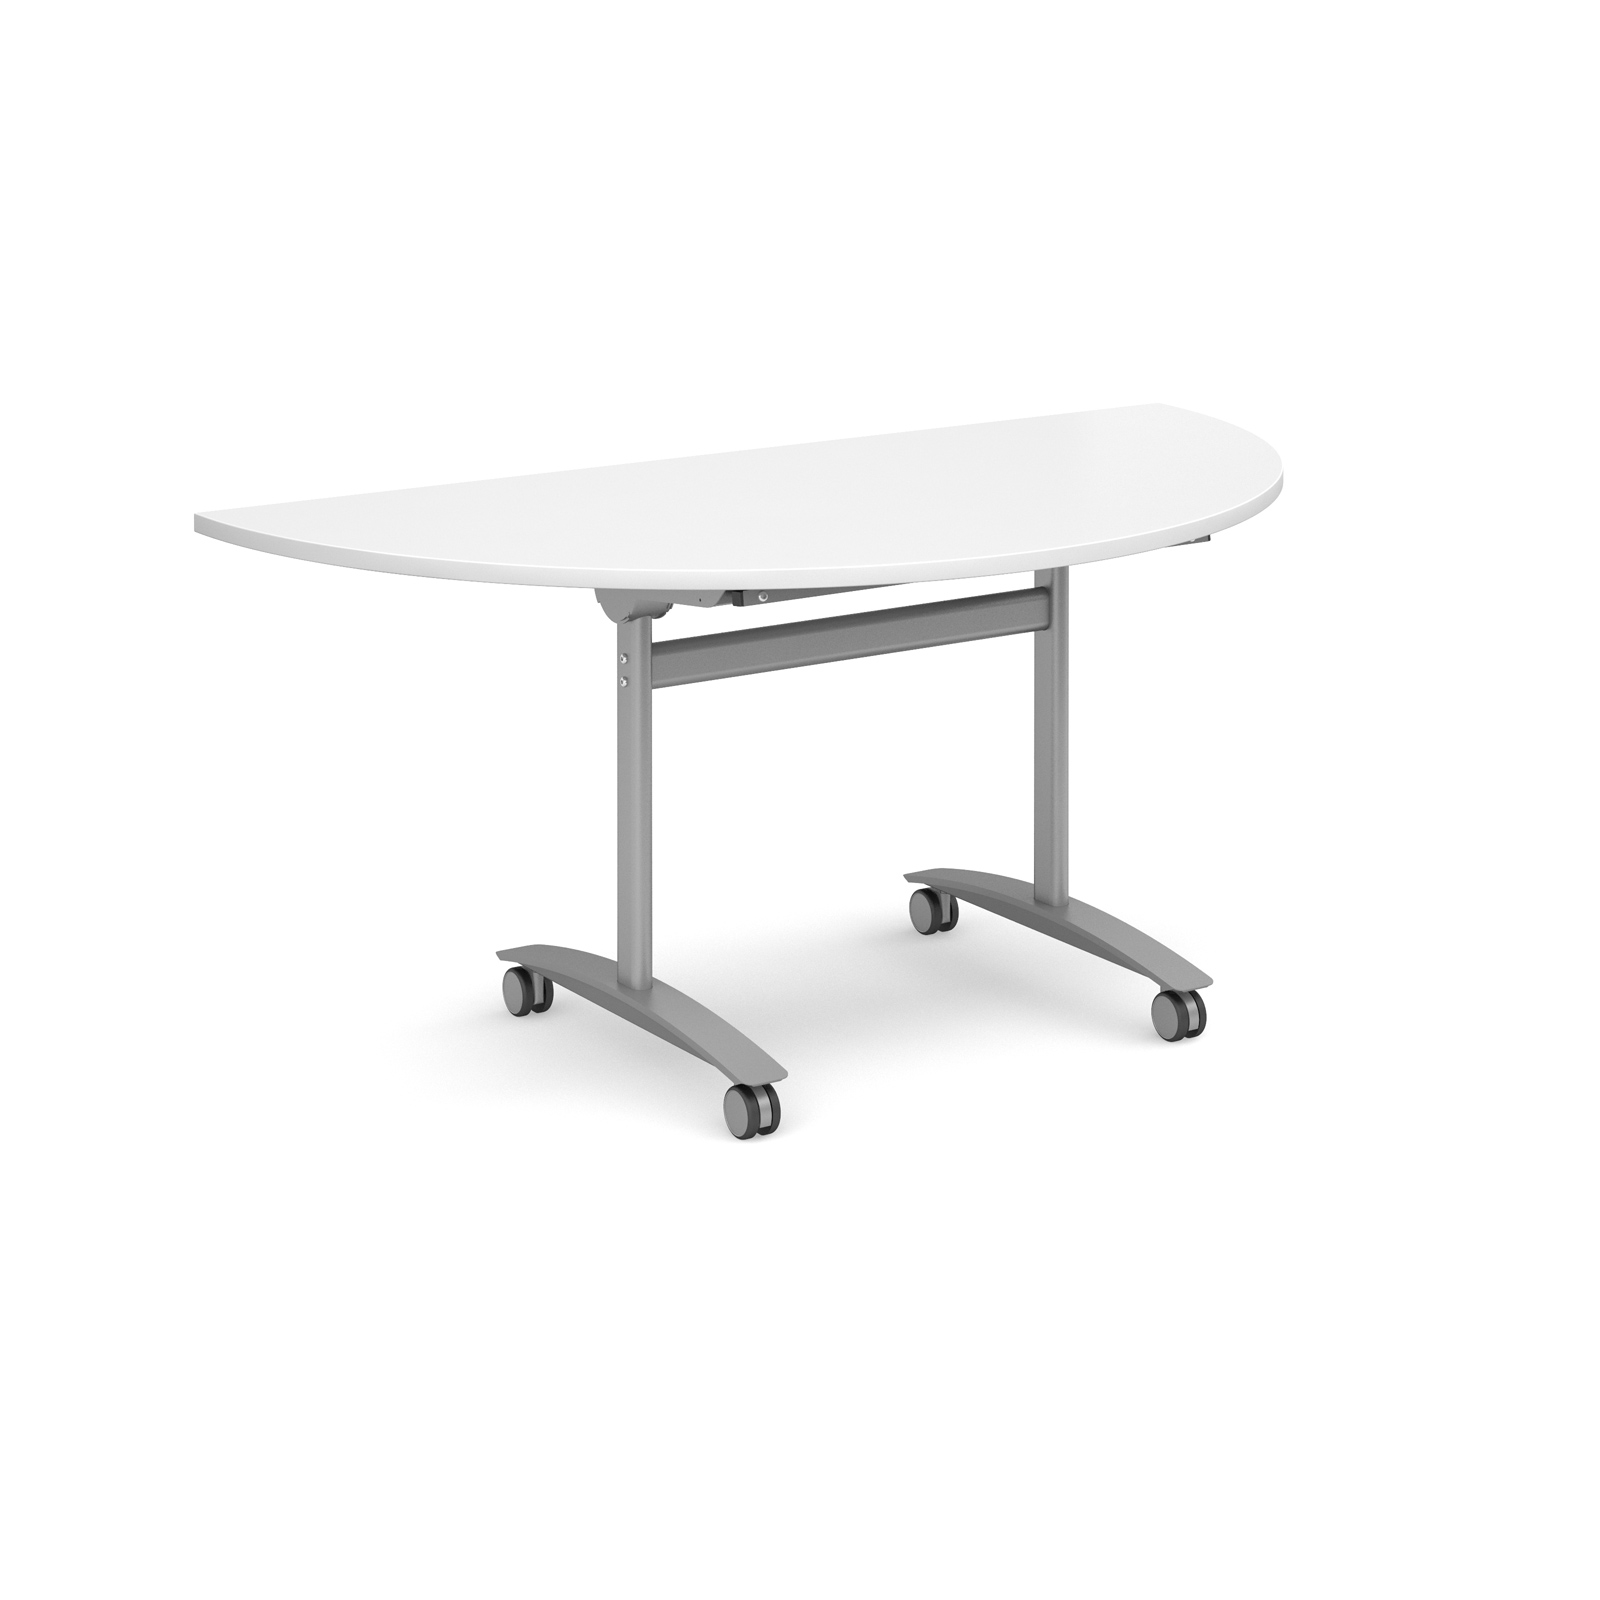 Active Fliptop Table | Circular